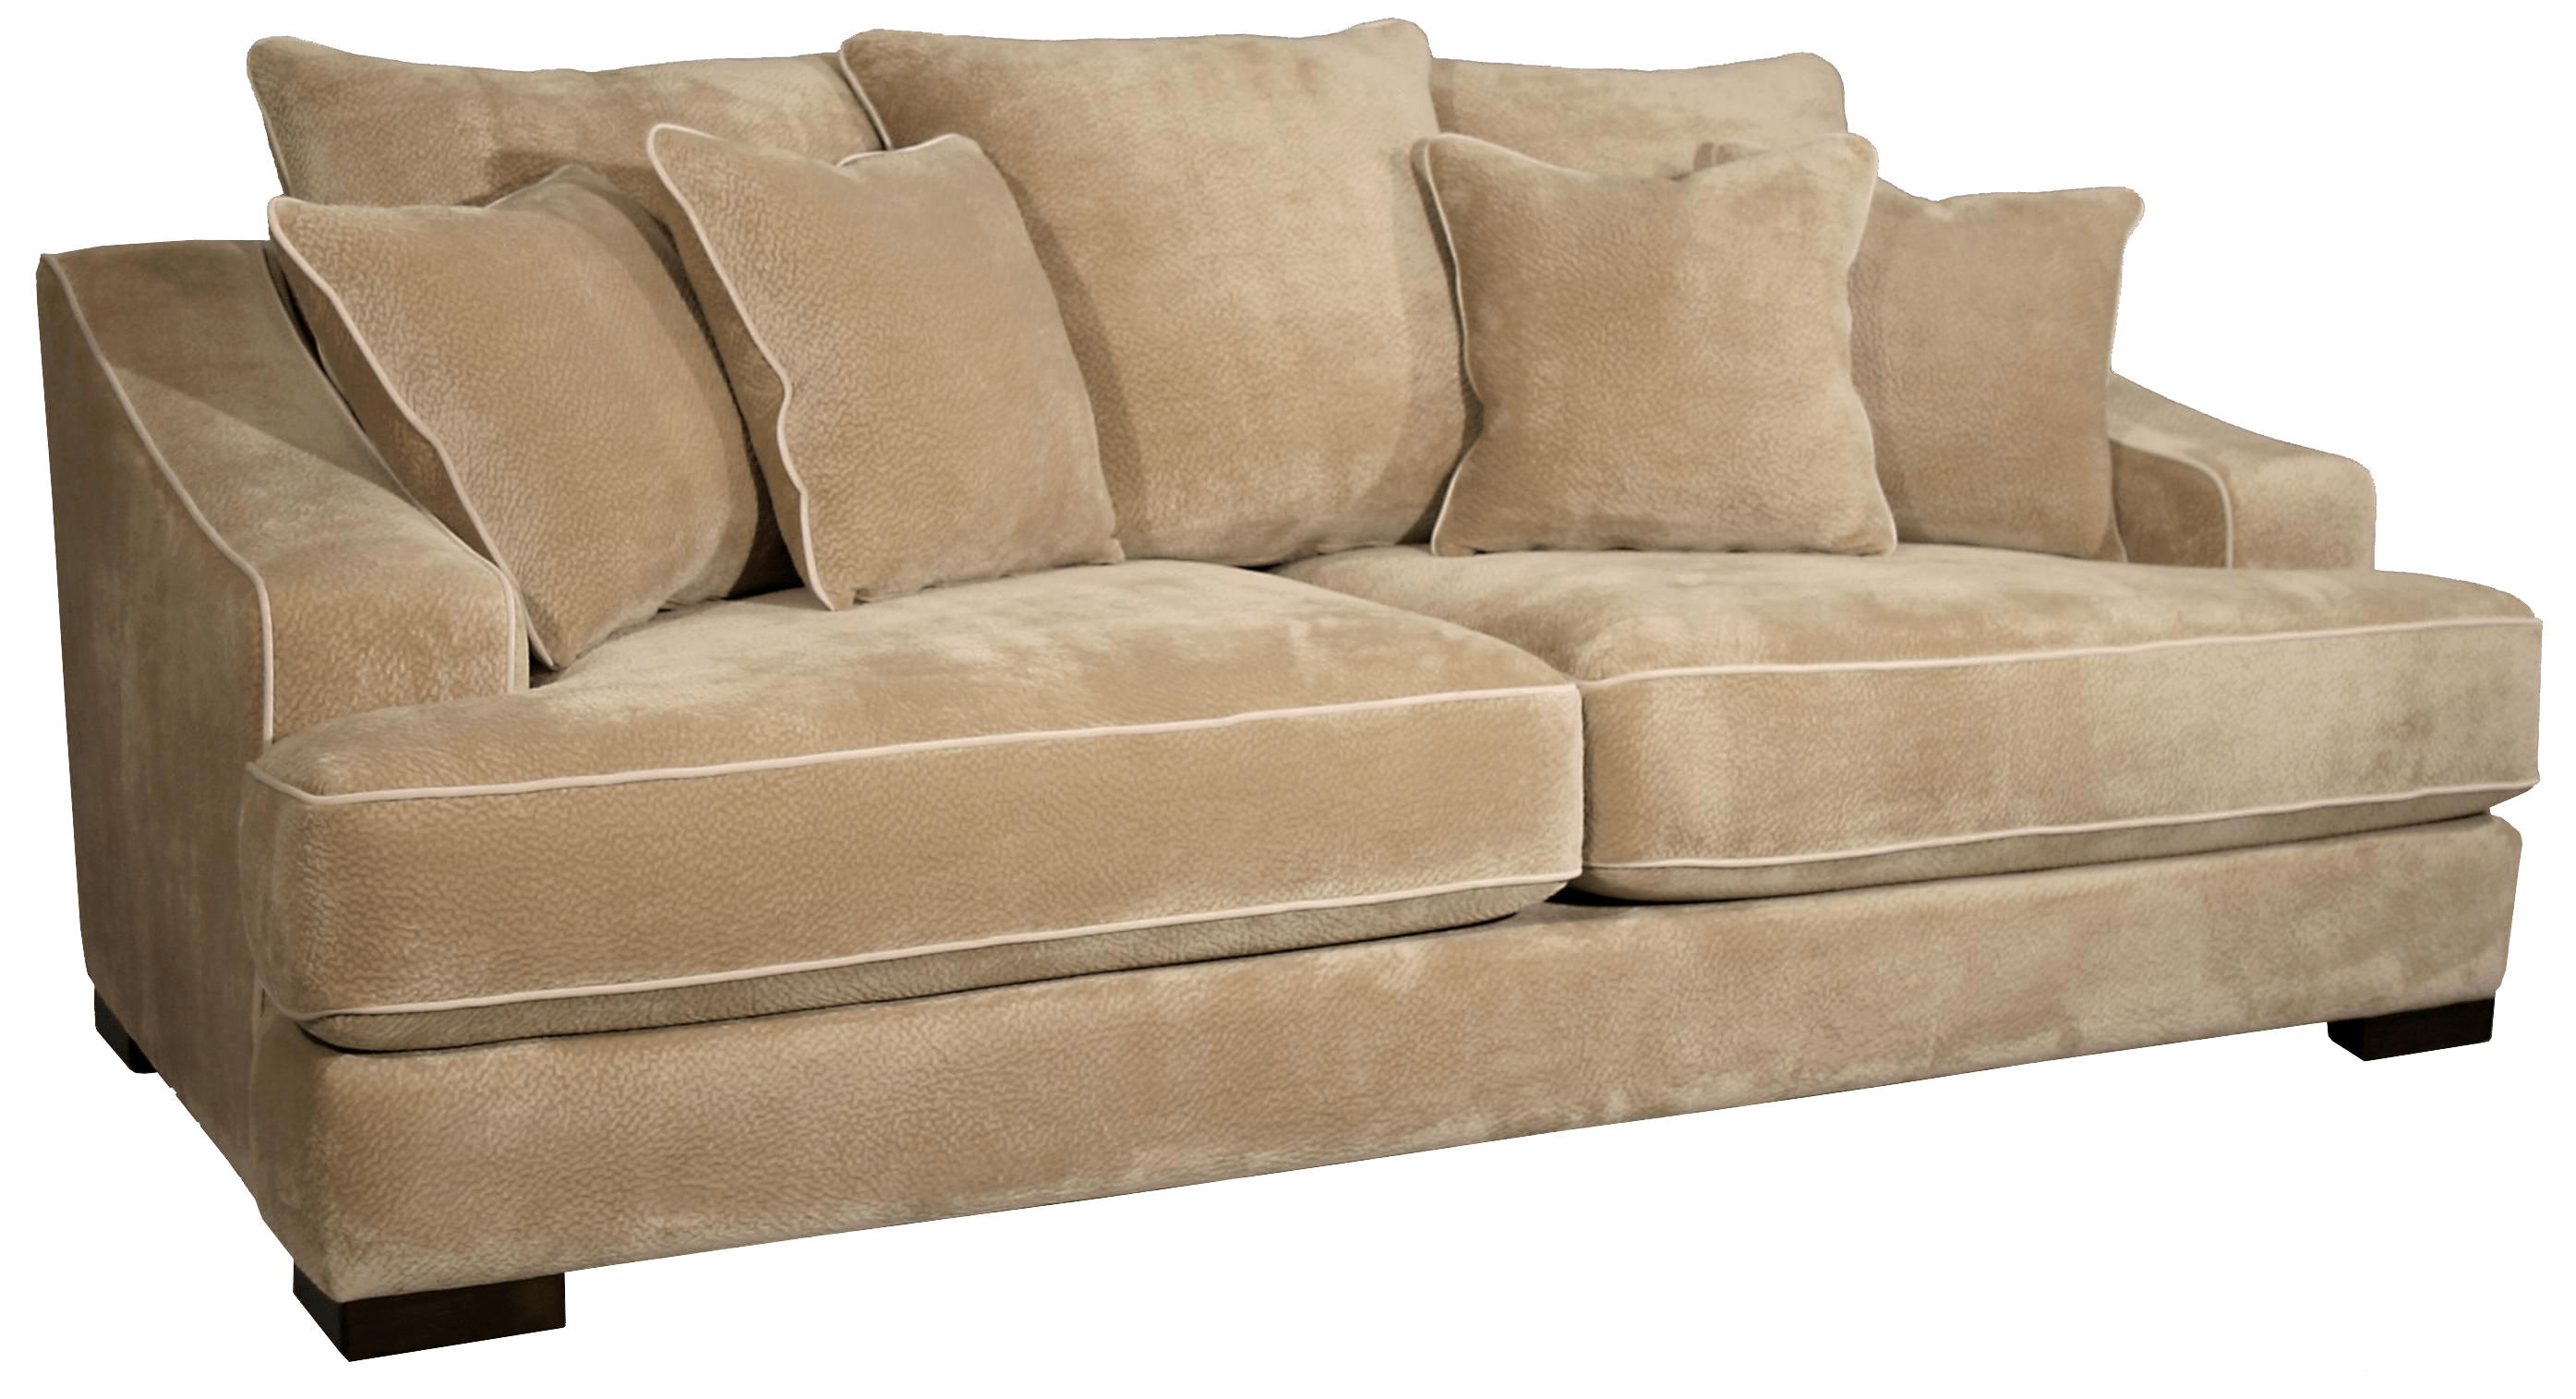 Sofa Set Vector Png Cooper Sofa Furniture Png Background